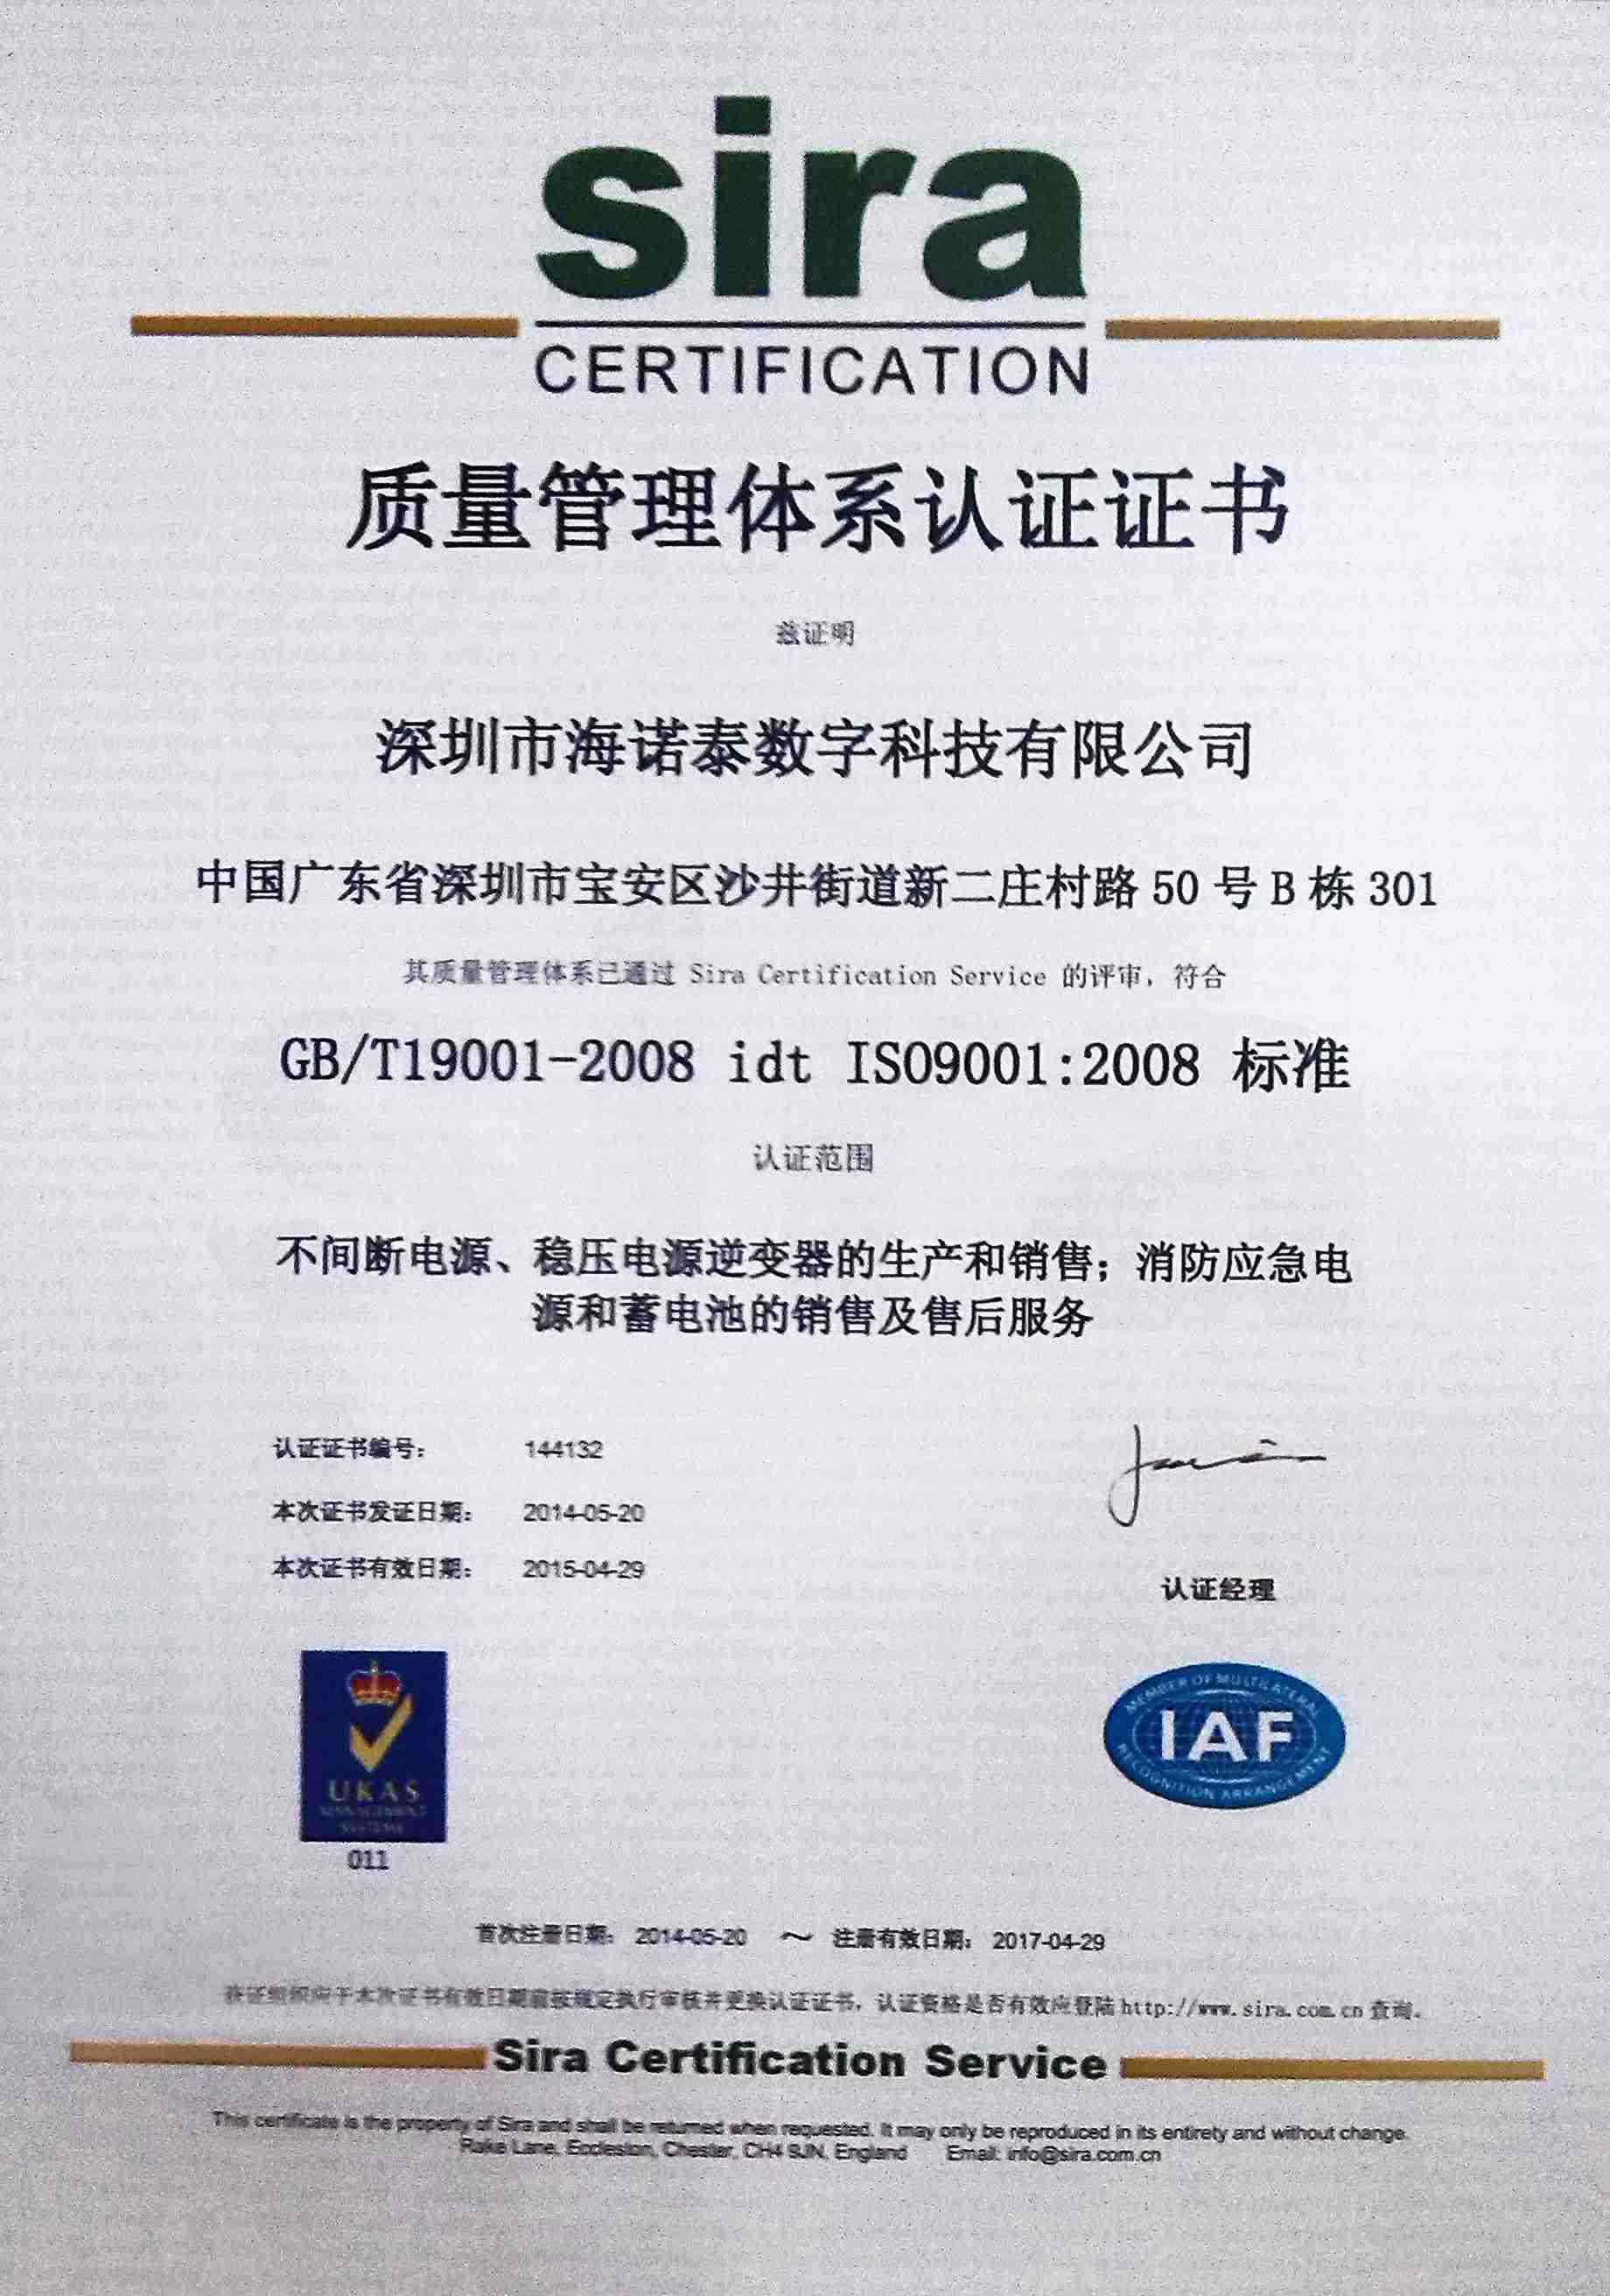 hiload ISO90001